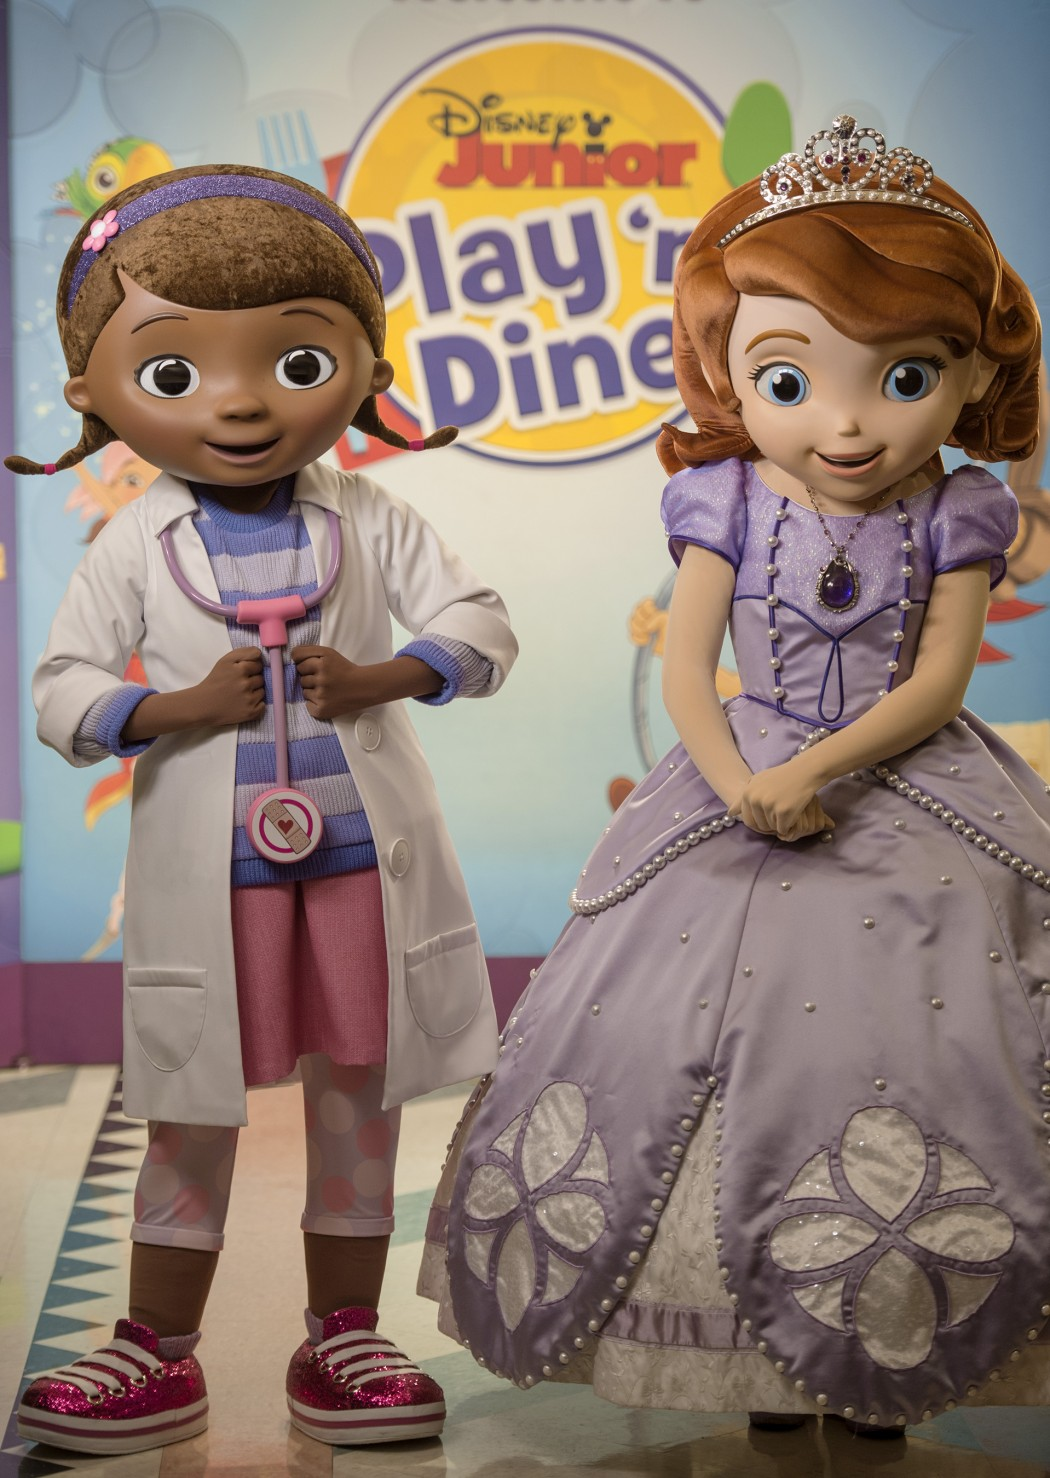 Doc mcstuffins meet and greet coming to walt disney world theme park doc mcstuffins meet and greet coming to walt disney world theme park m4hsunfo